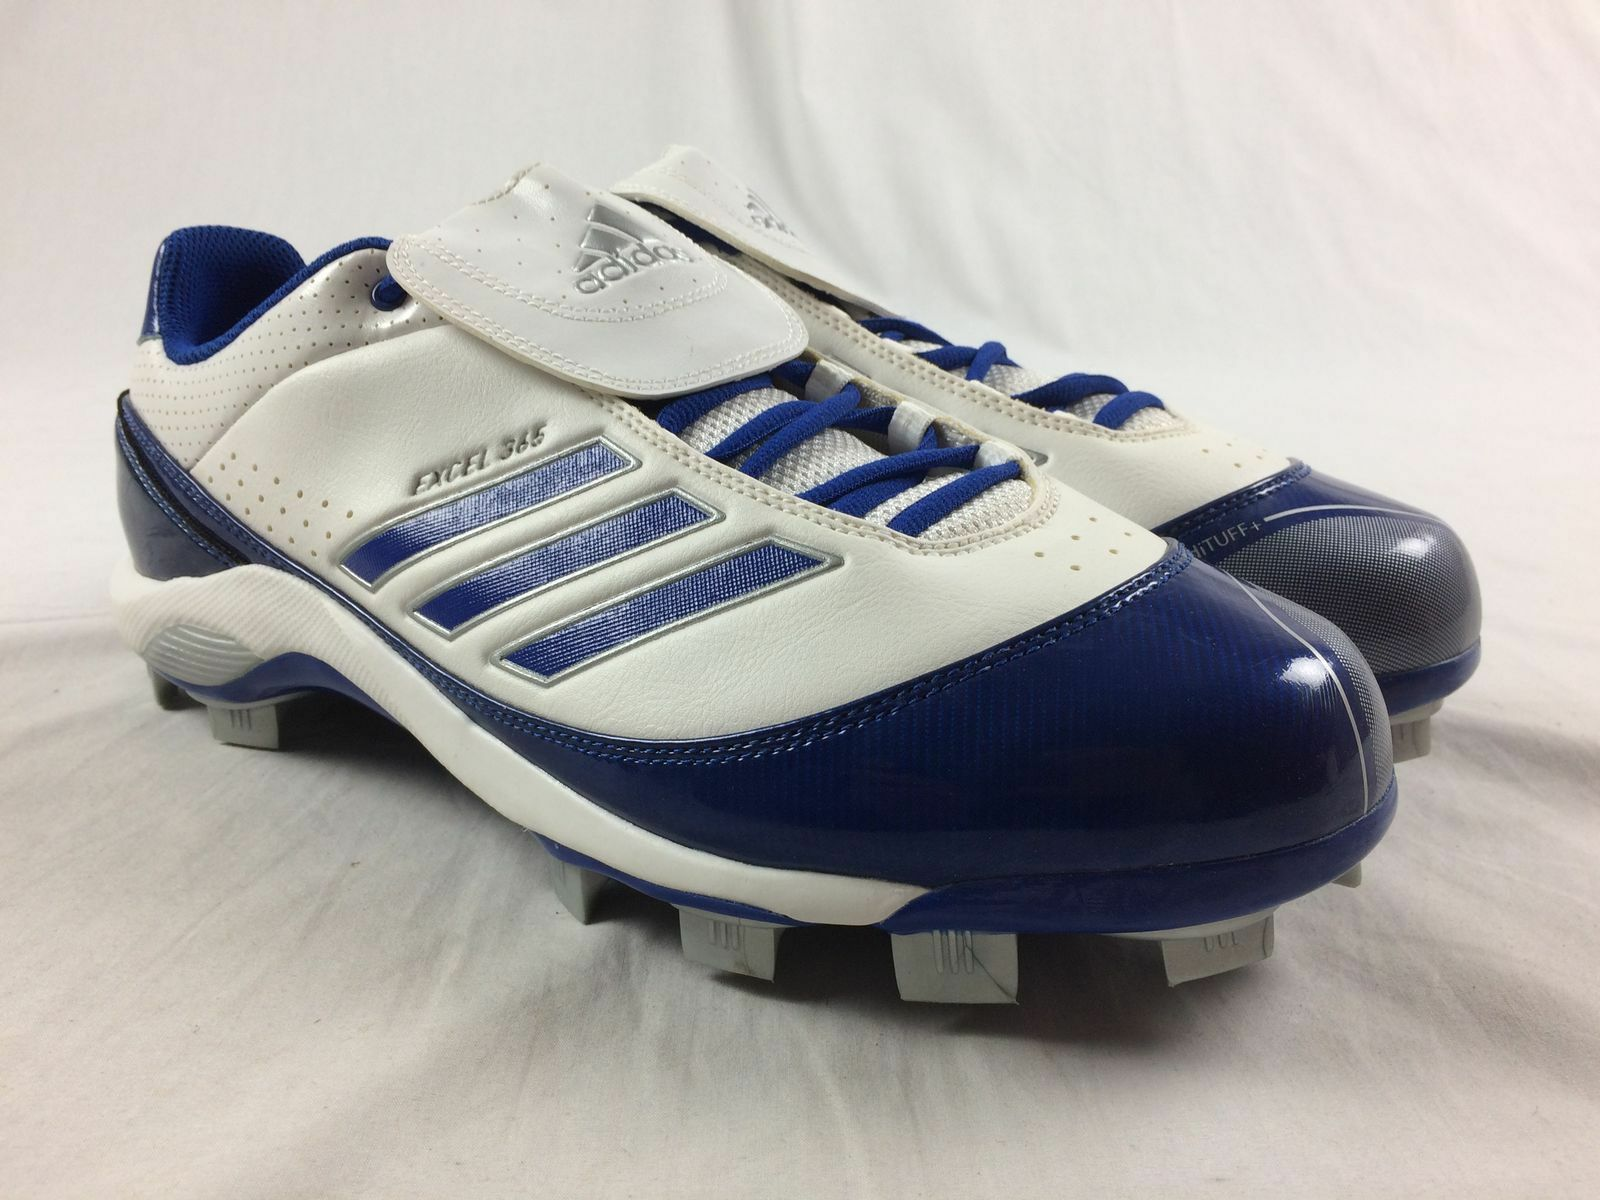 NEW adidas AS SMU Excel 365 TP - White bluee Cleats (Men's Multiple Sizes)